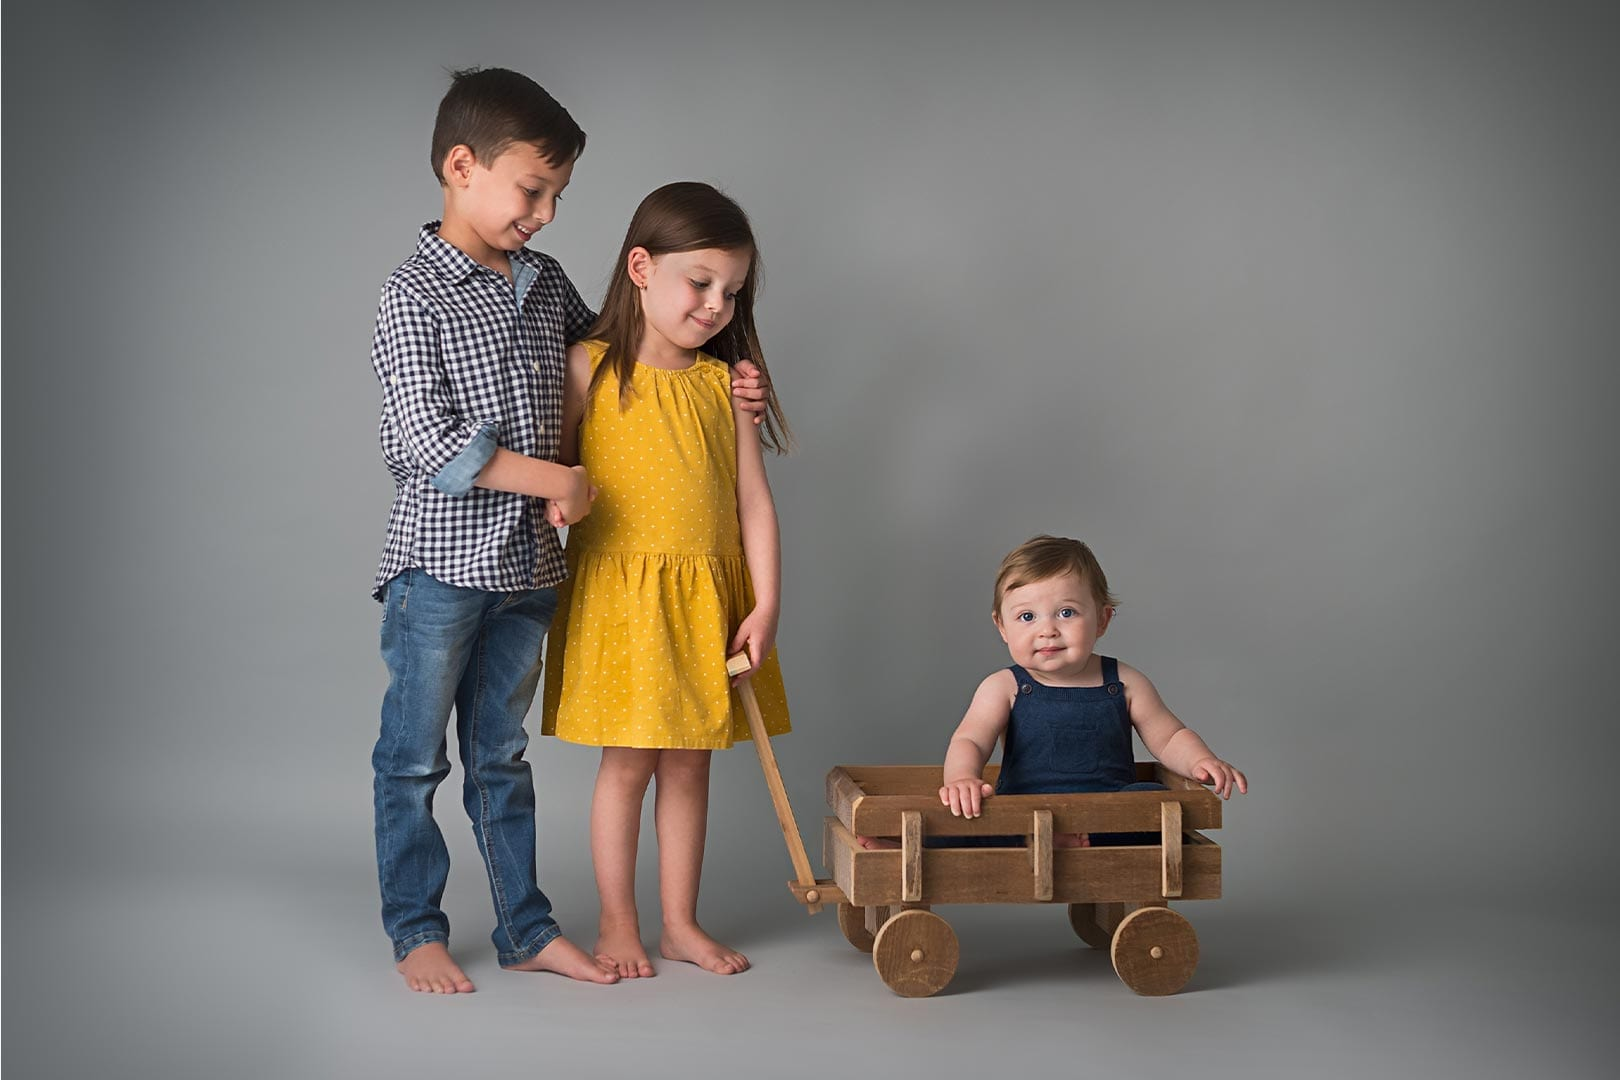 a toddler in the wooden cart with her siblings